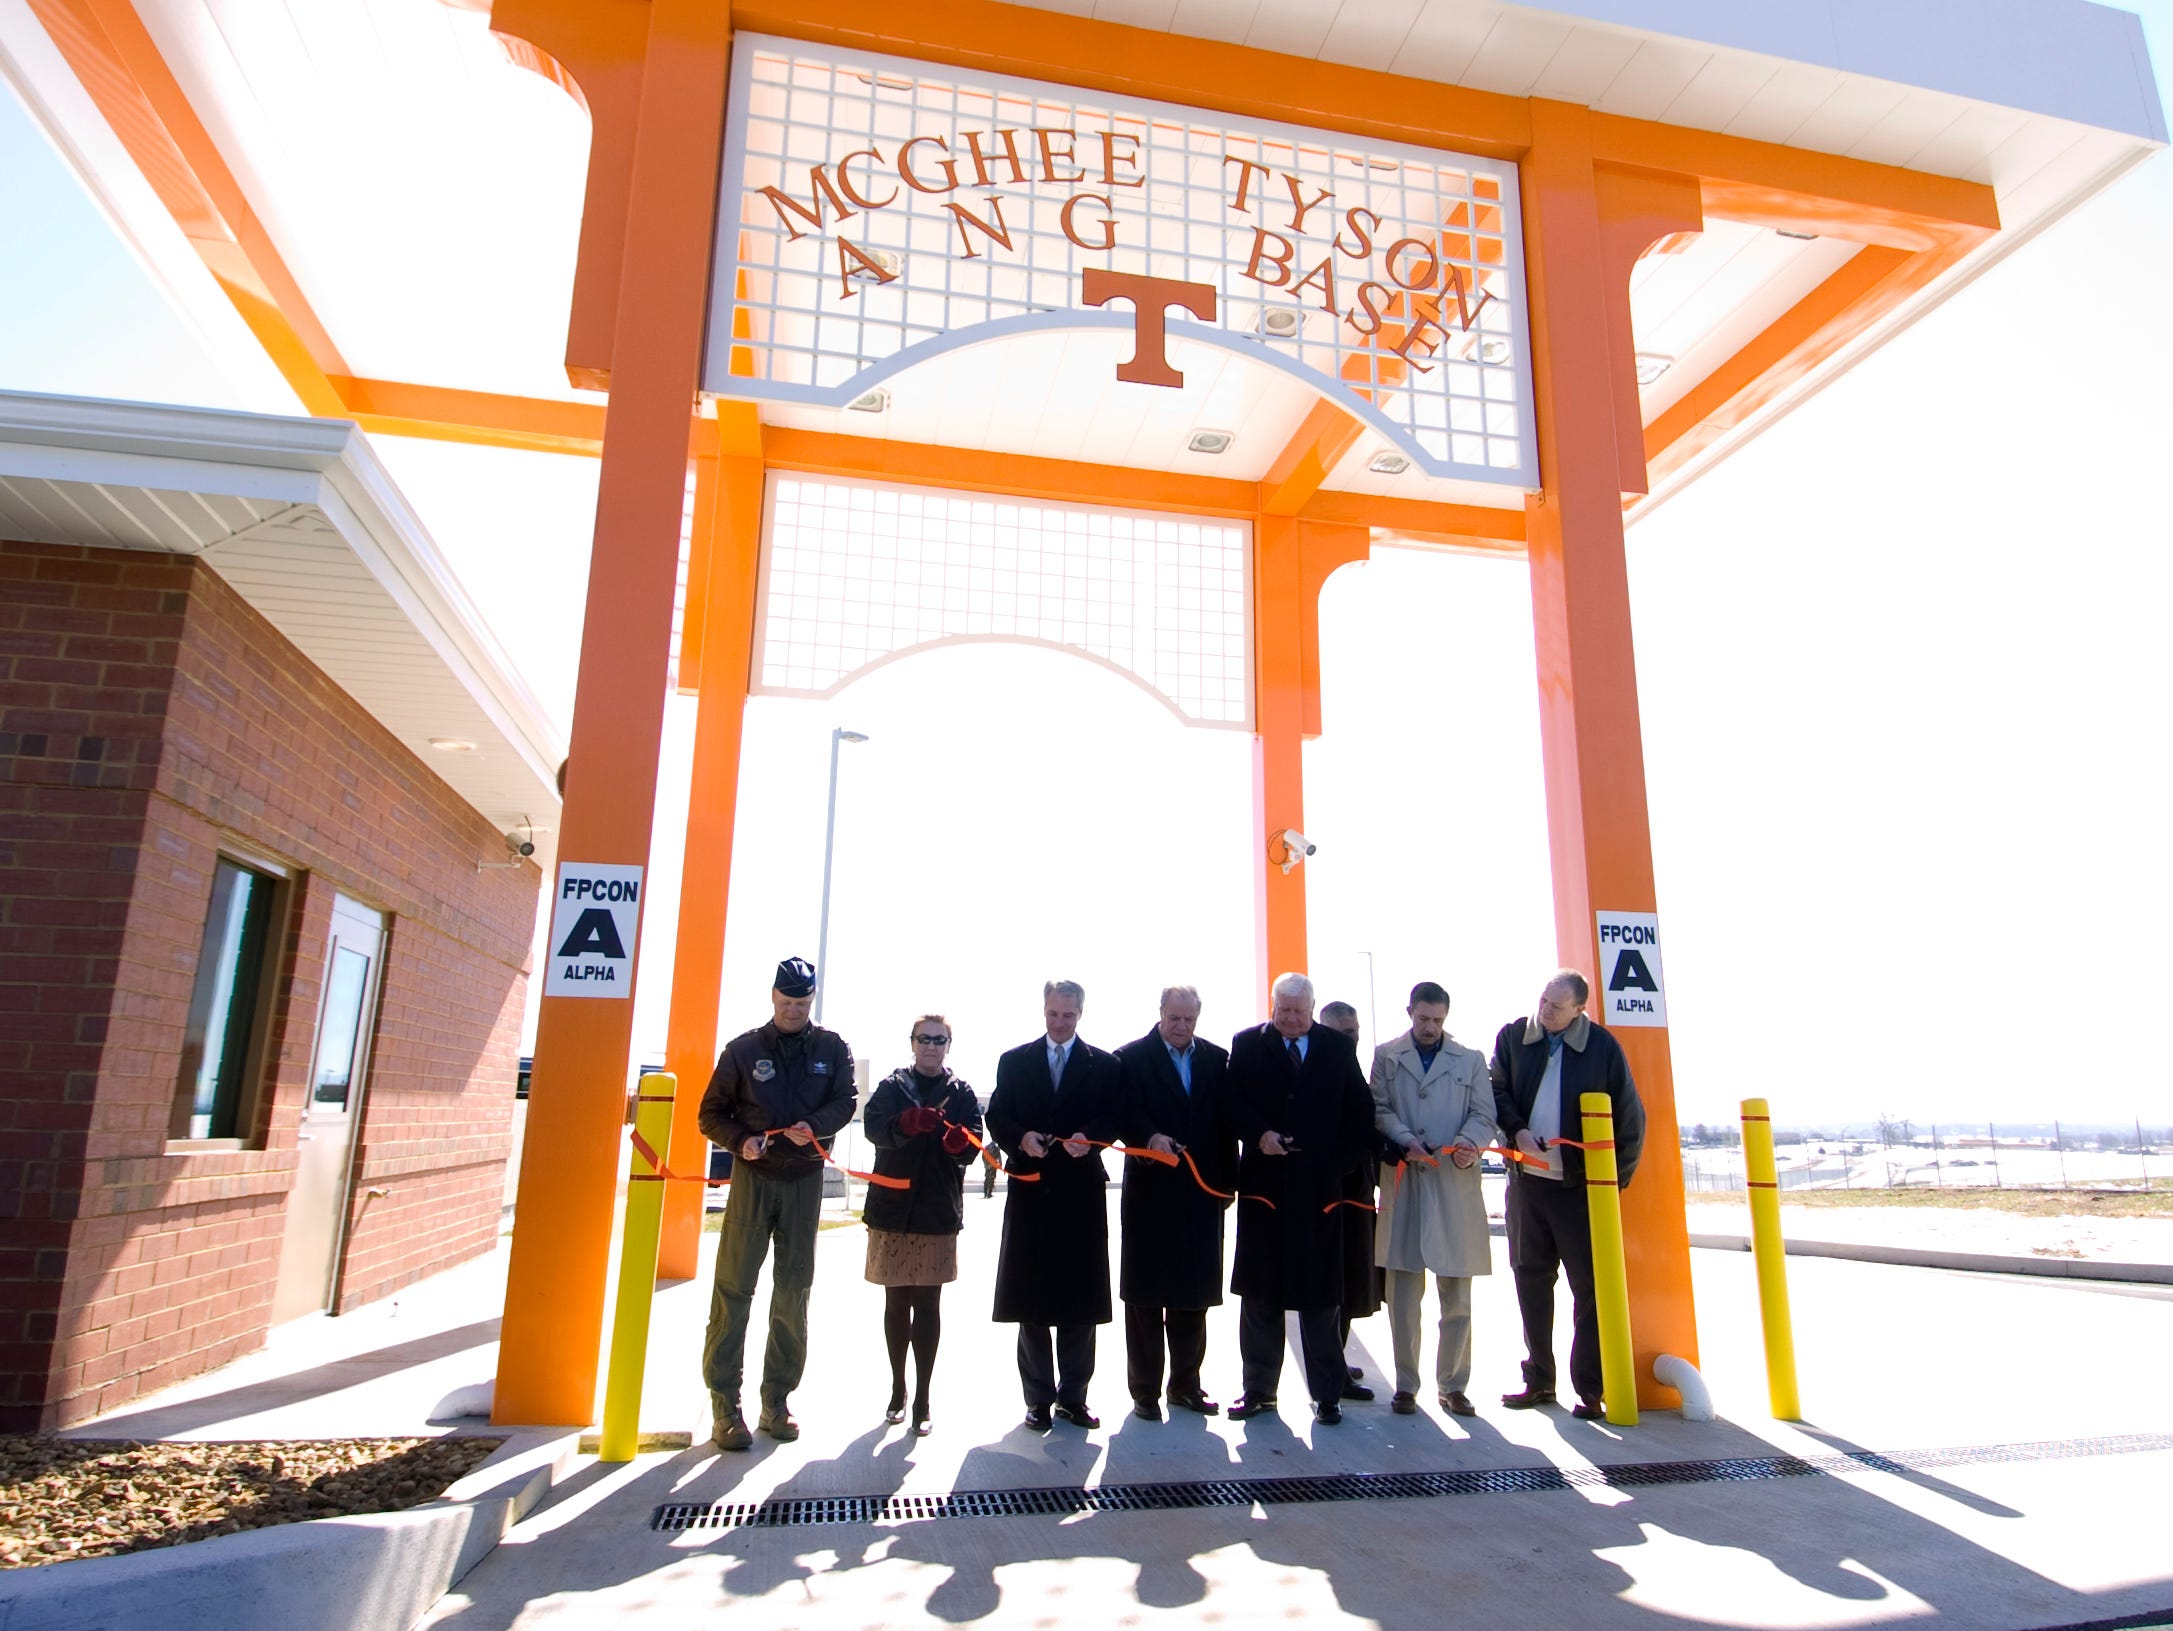 From left, Col. Tim Dearing (cq), Tammy Easterday (cq), Mike Ragsdale (cq), Don Mull (cq), Jerry Cunningham (cq), Chris Soro (cq), Bill Dunlap (cq) and Bill Marrison (cq) participate in a ribbon cutting ceremony to dedicate the new security gate at the McGhee Tyson Air National Guard Base Thursday, February 5, 2009.